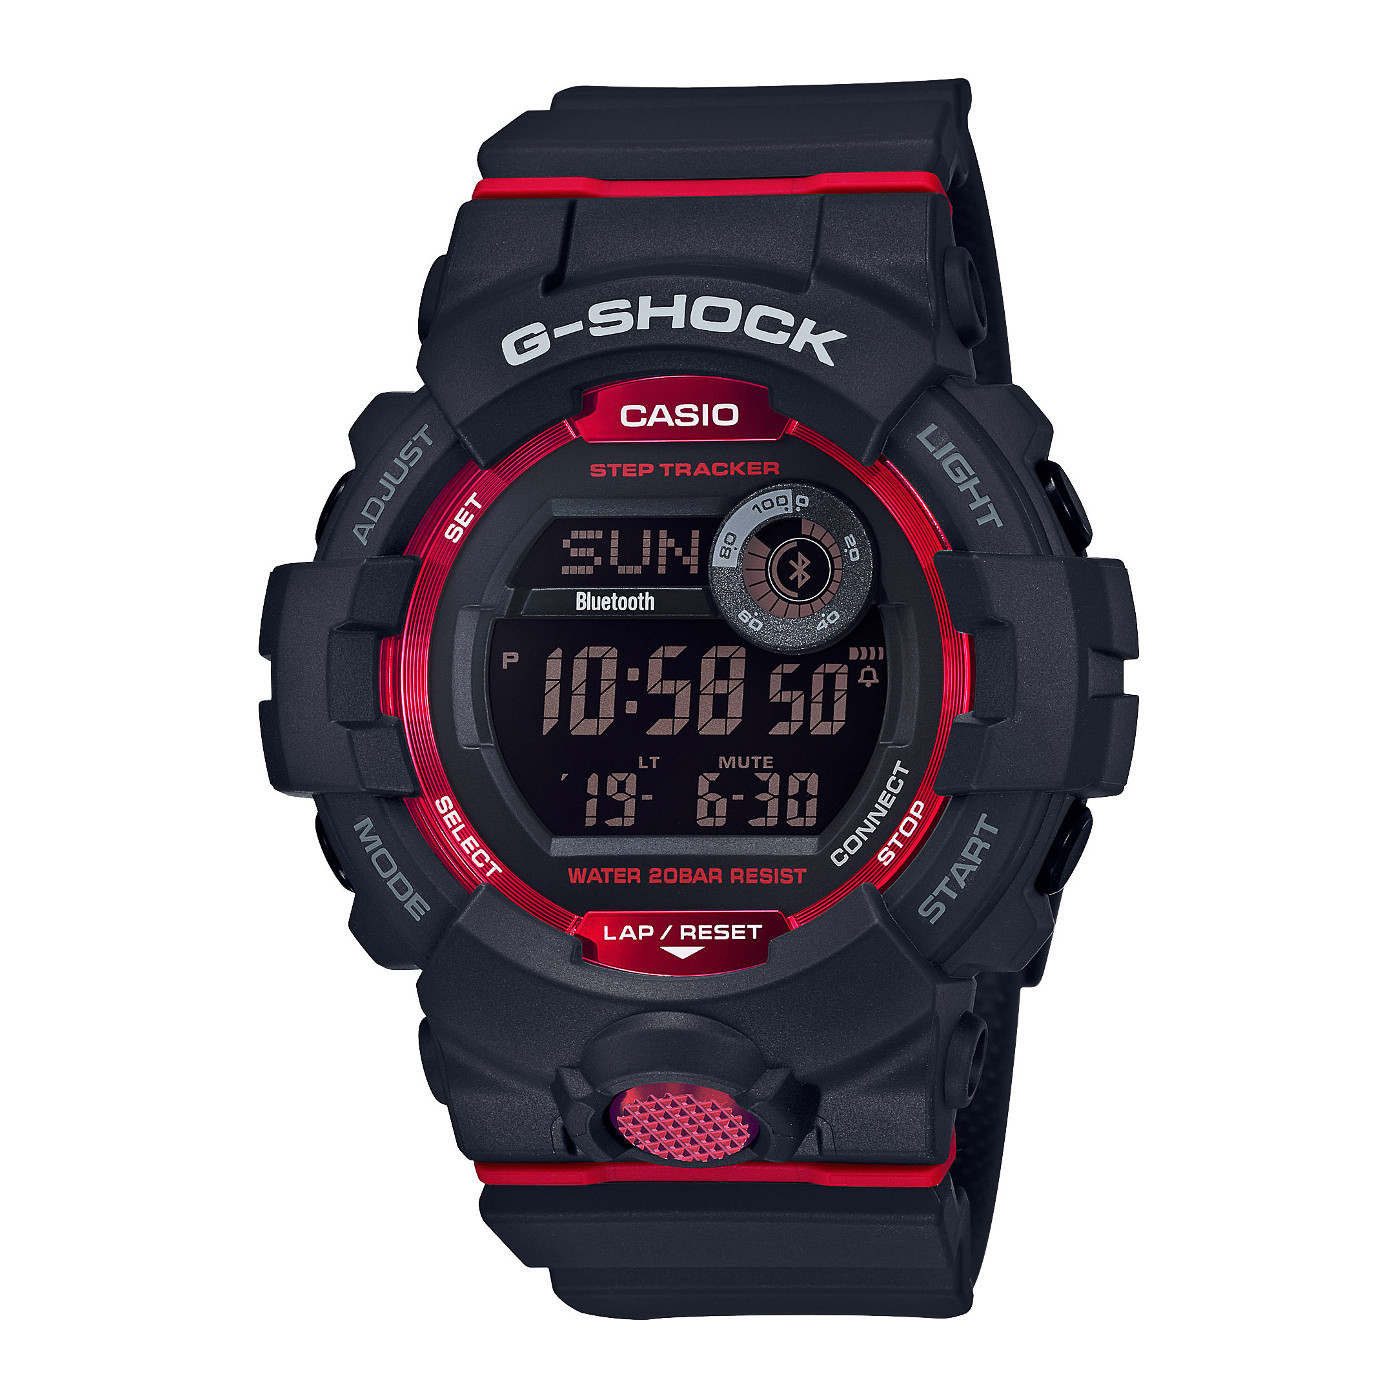 G-Shock G-Squad Stepcounter Bluetooth Connected horloge GBD-800-1ER